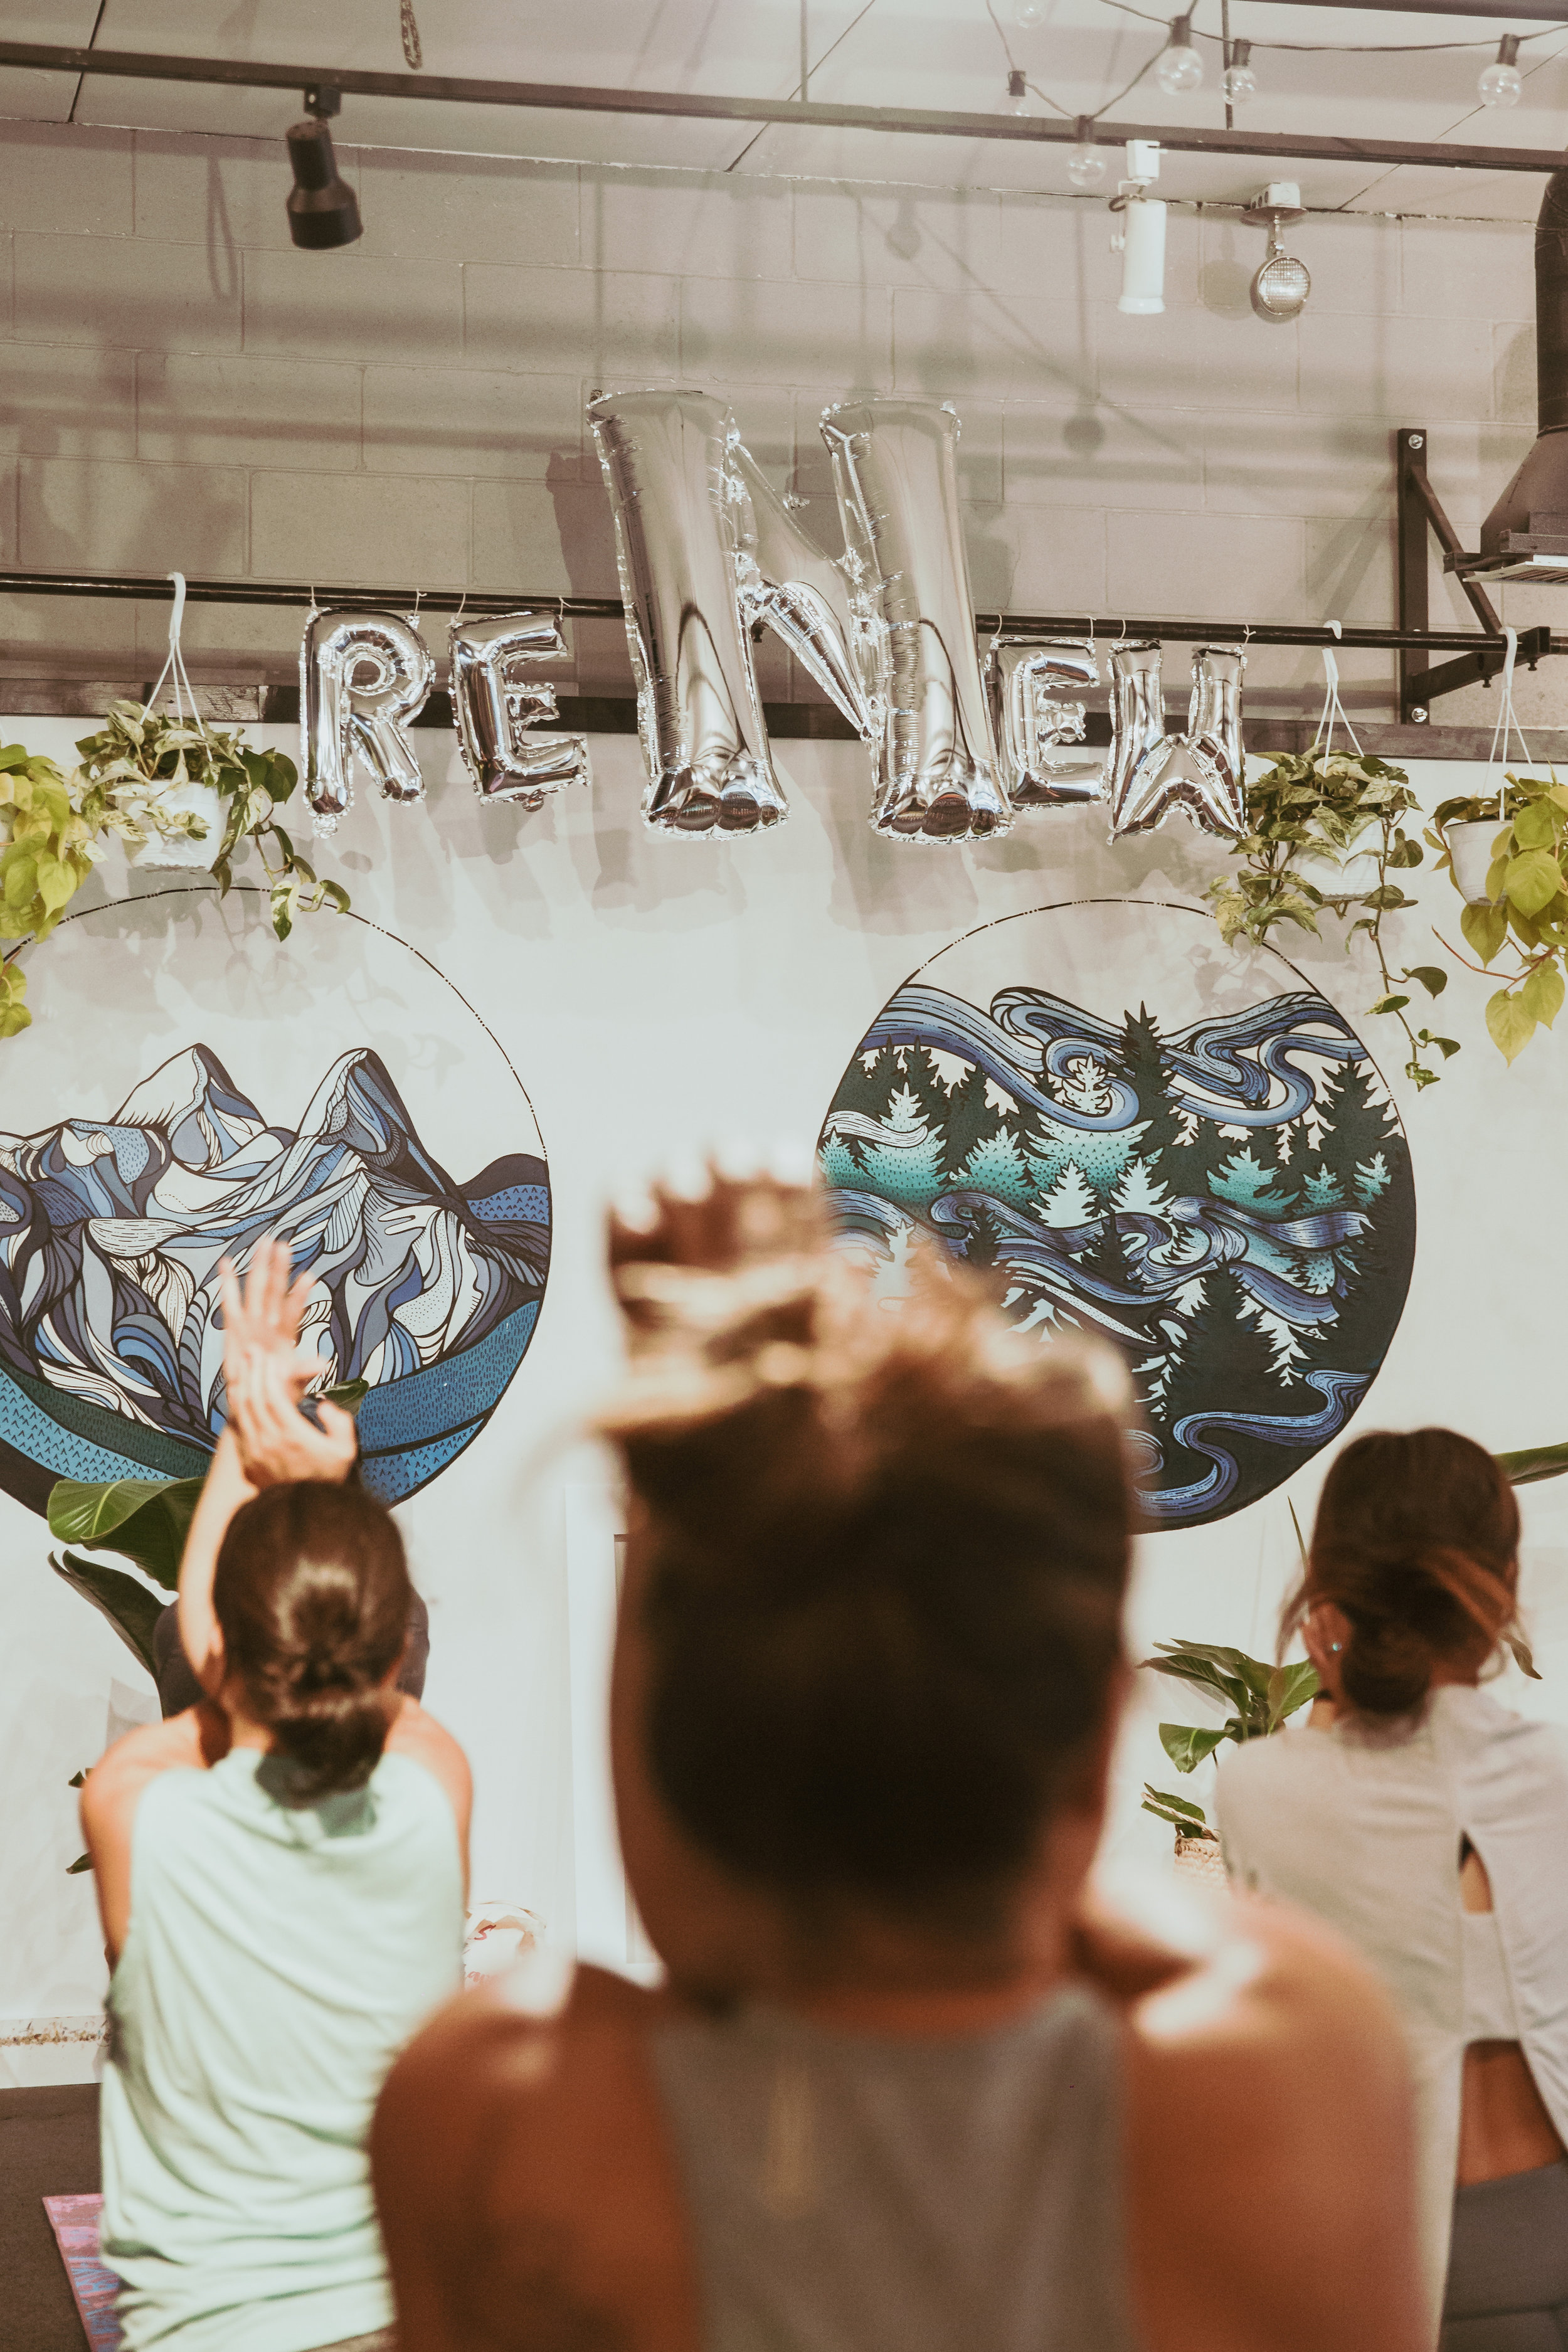 renewretreats-launch-20190810-42.jpg